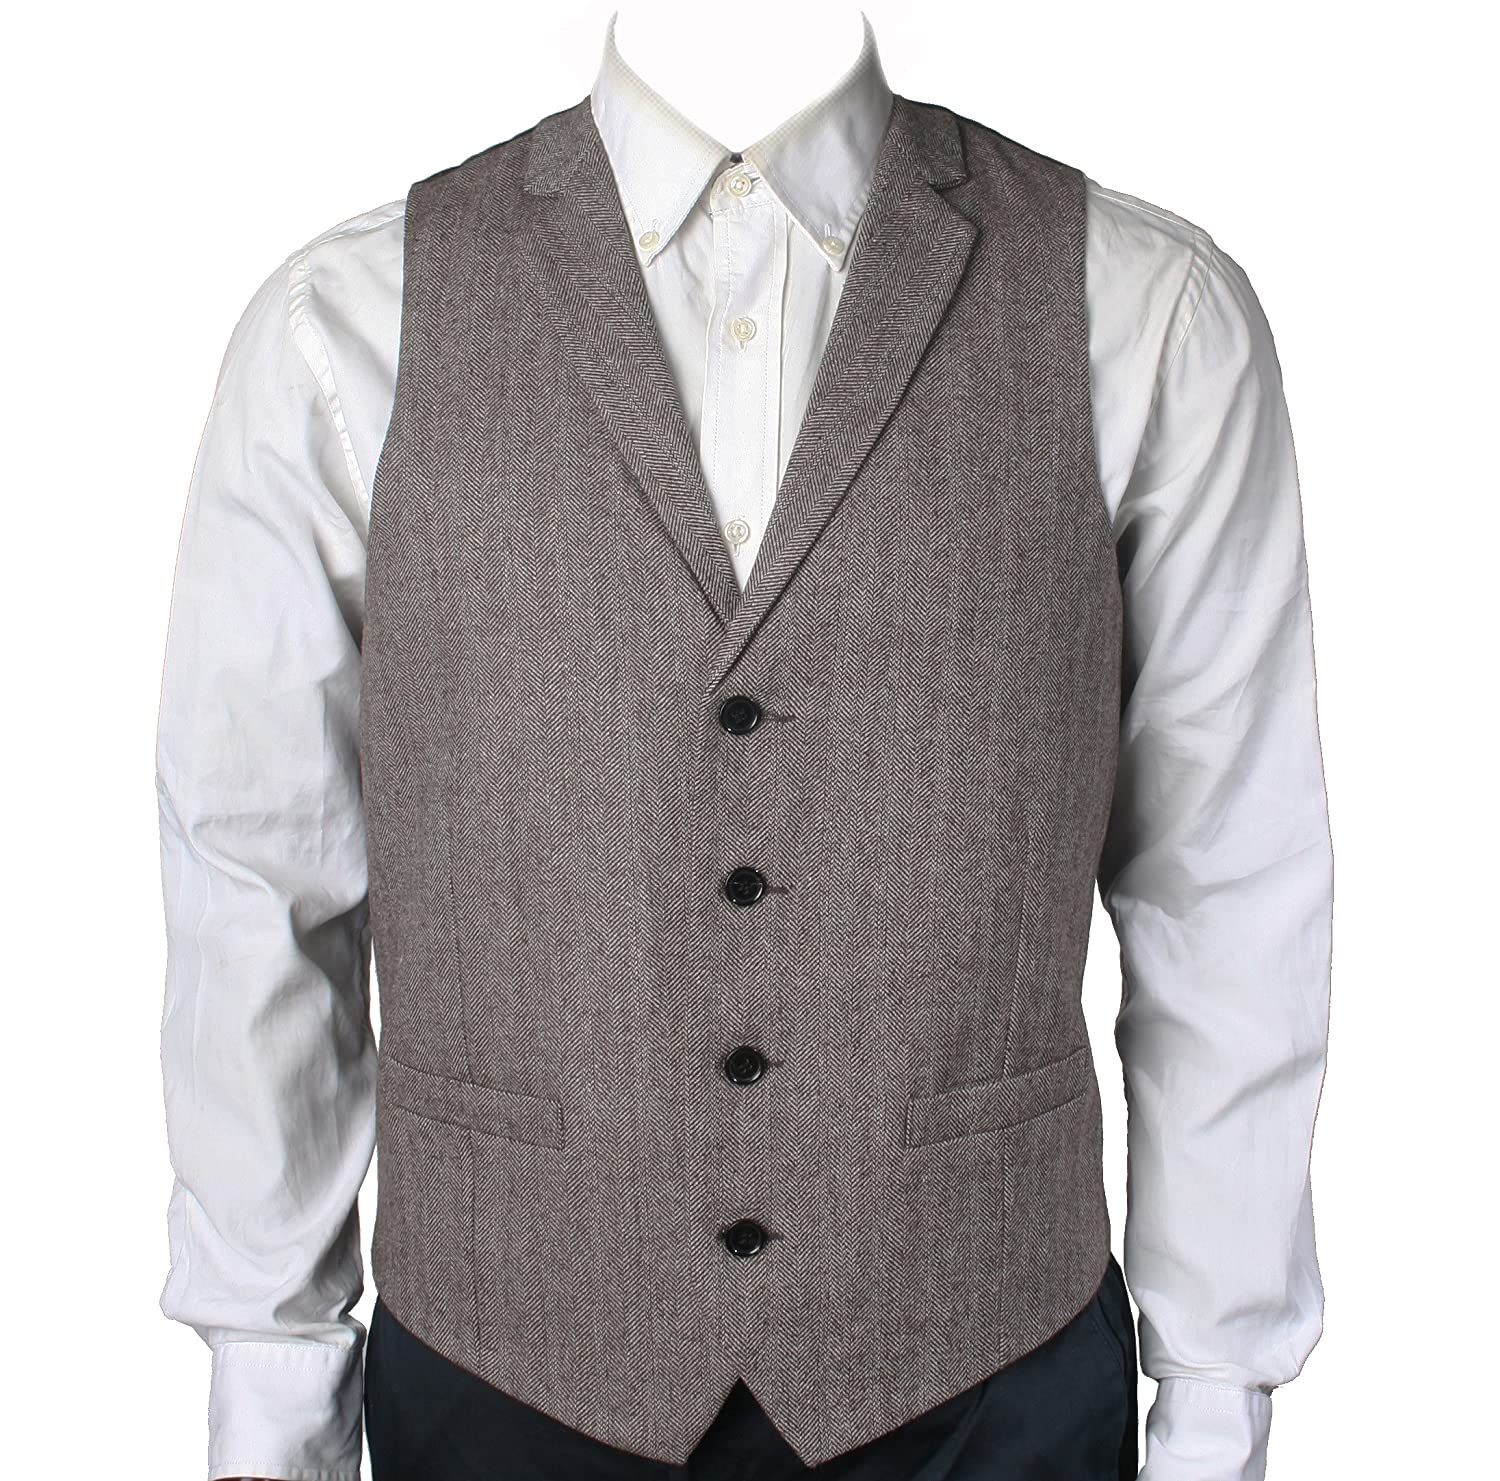 1920s Style Mens Vests Herringbone/Tweed Tailored Collar Suit Vest $37.00 AT vintagedancer.com